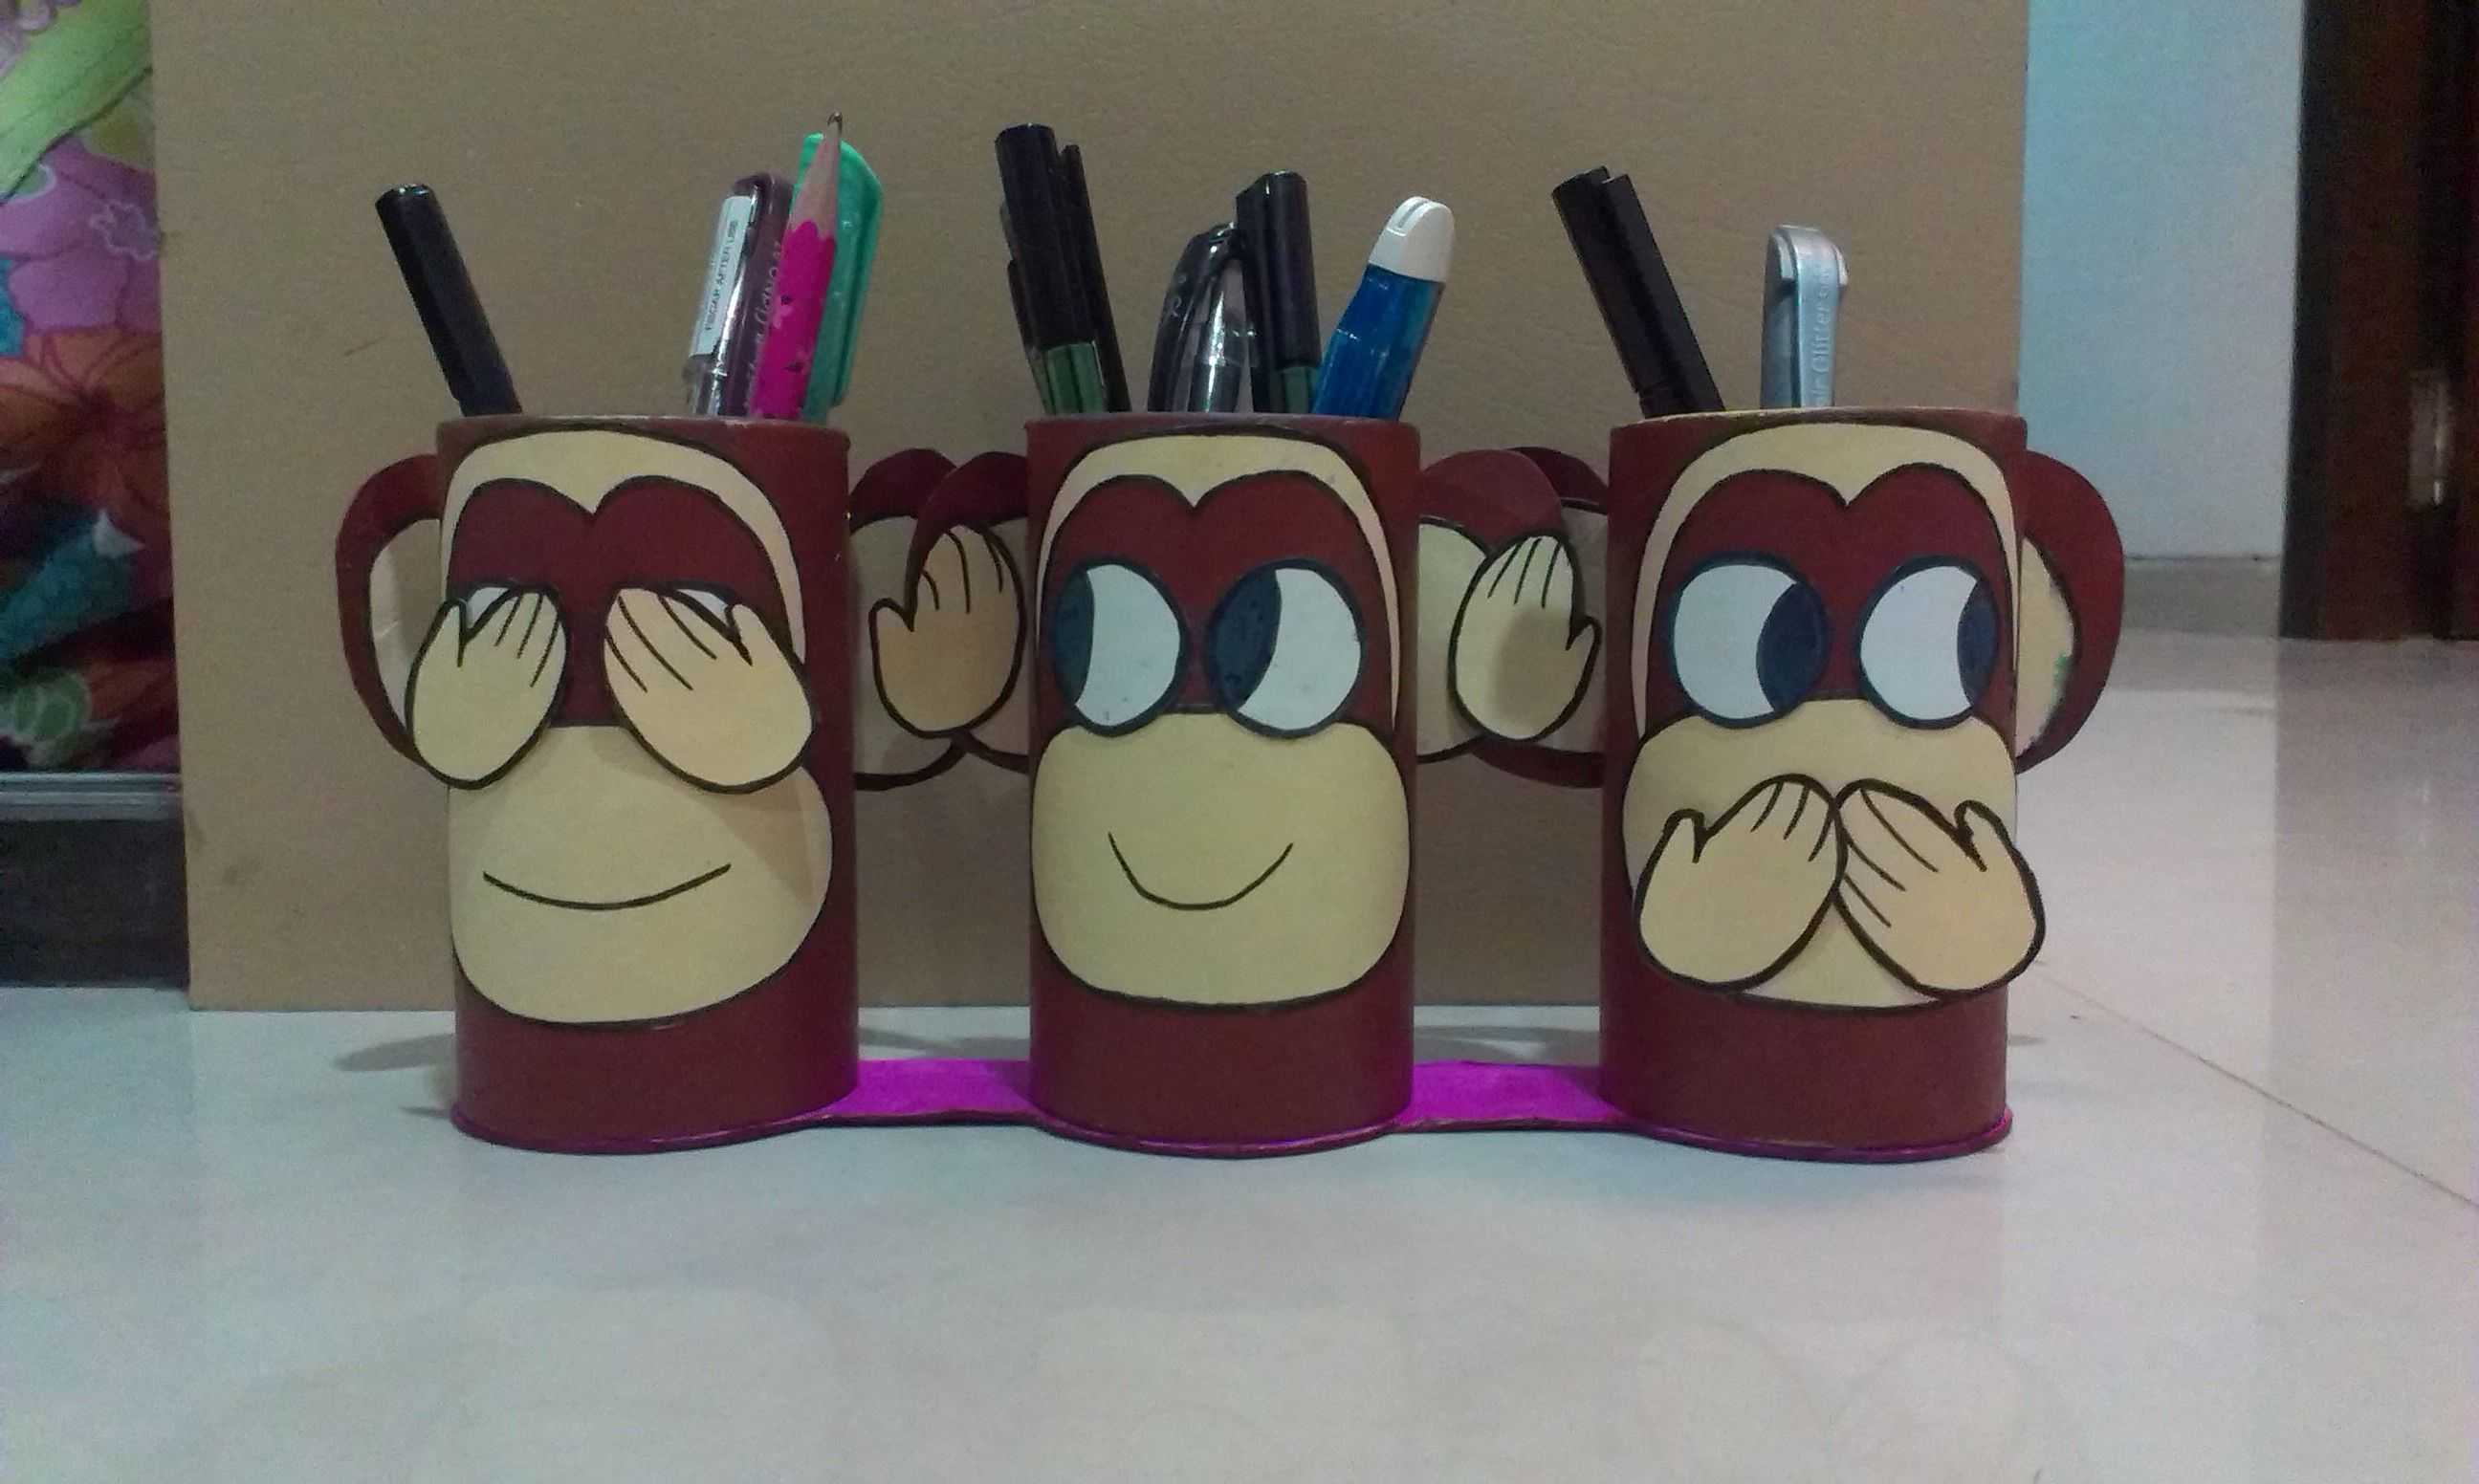 Gandhiji 39 s 3 monkeys pen stand diy diypenstand best out for Simple craft work using waste materials